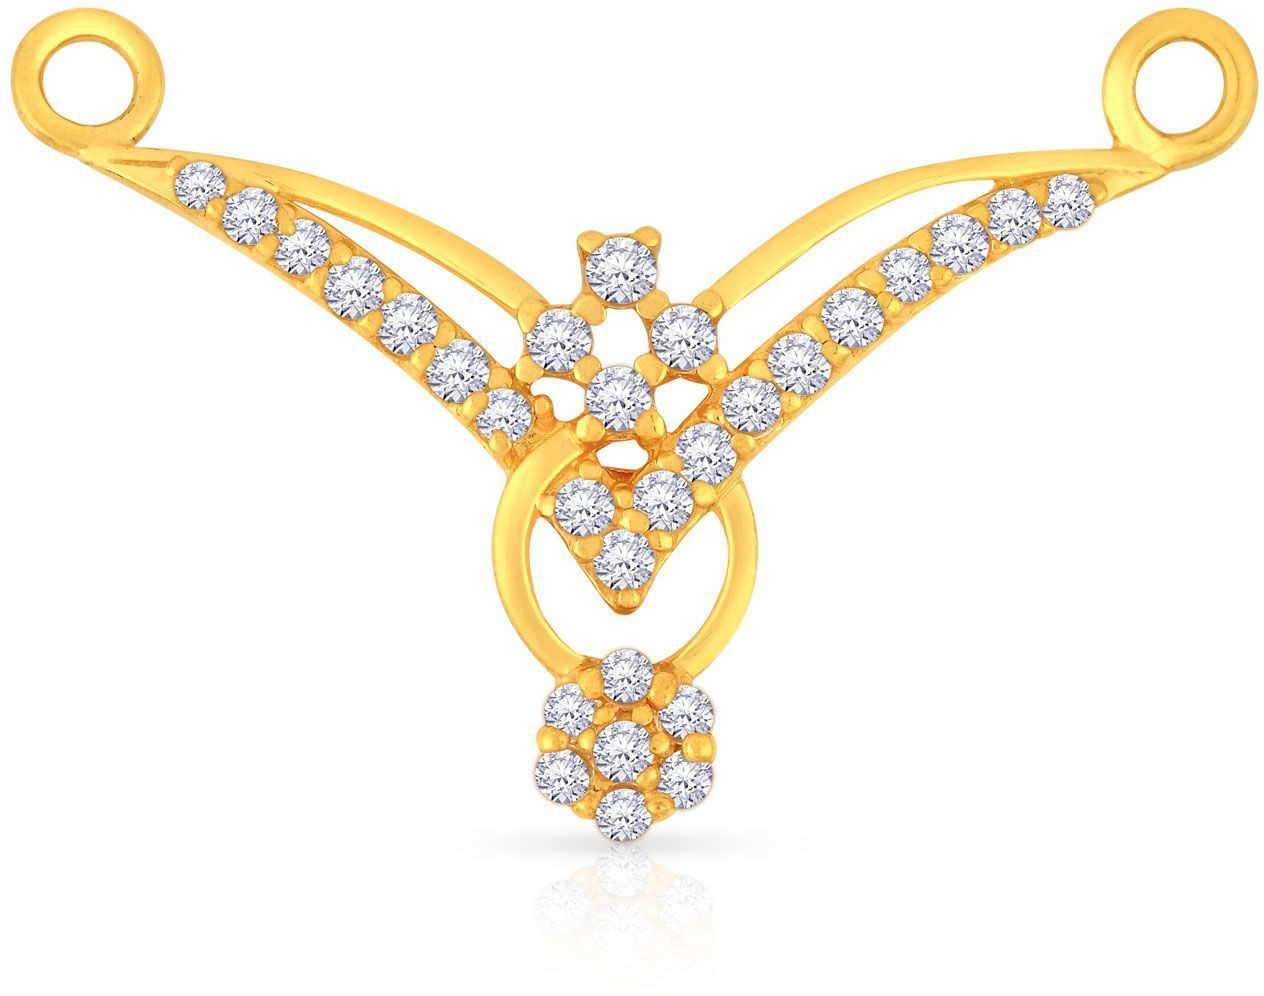 Deals - Delhi - Malbar, TBZ, Gili <br> Gold & Diamond Jewellery<br> Category - jewellery<br> Business - Flipkart.com